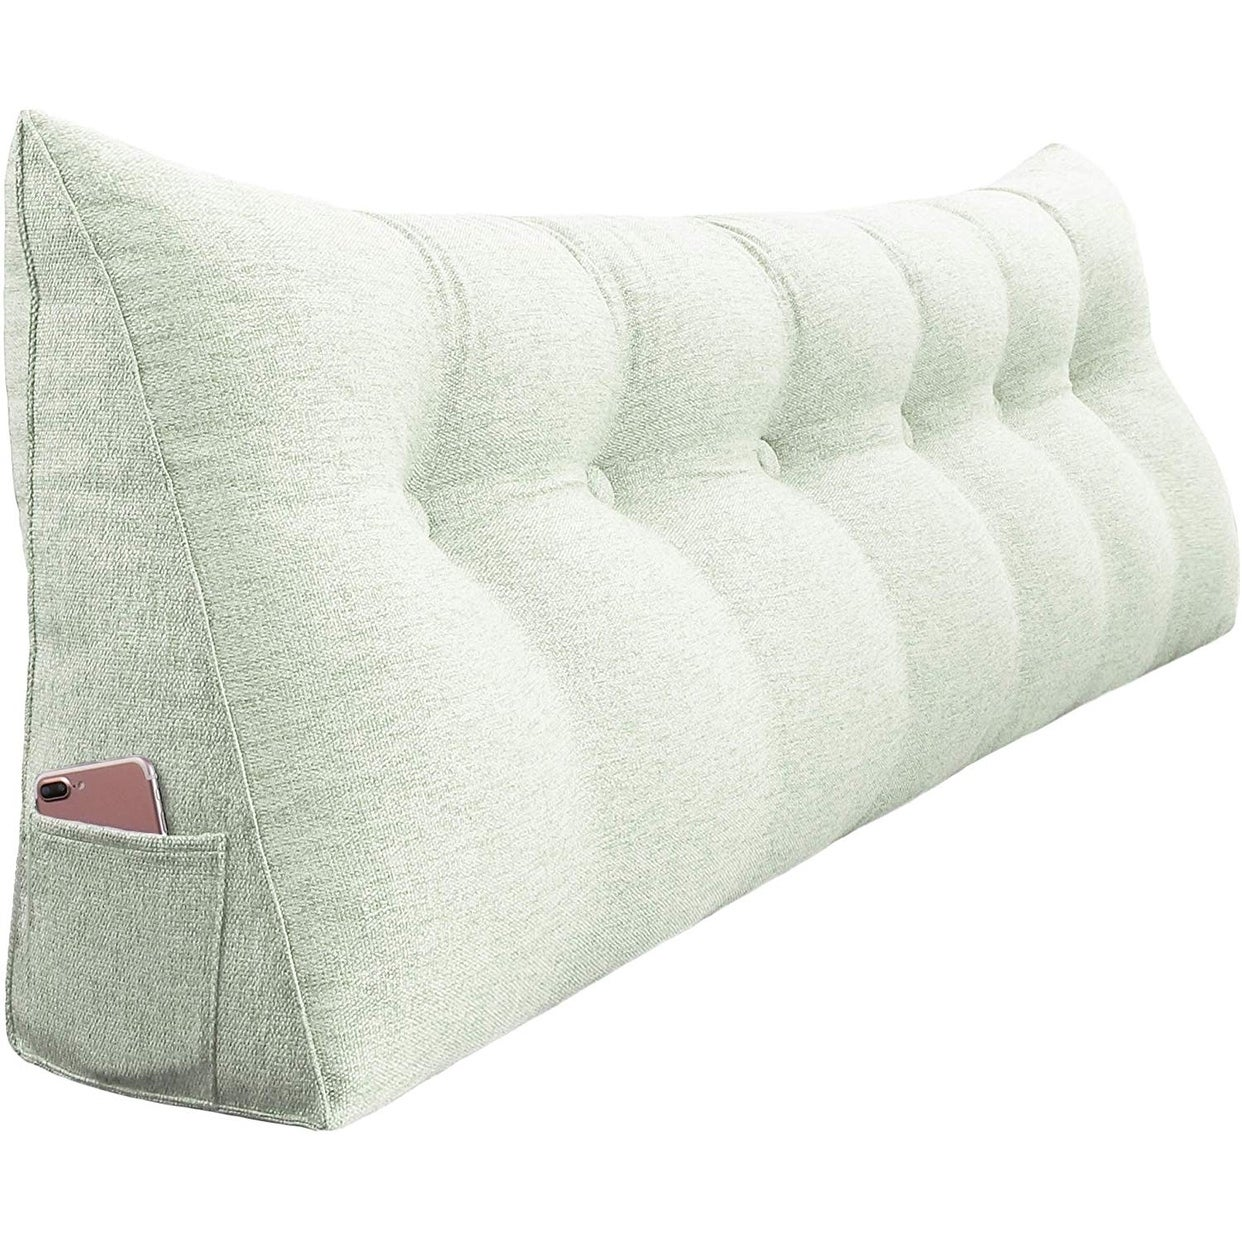 Wowmax Bed Wedge Bolster Pillow